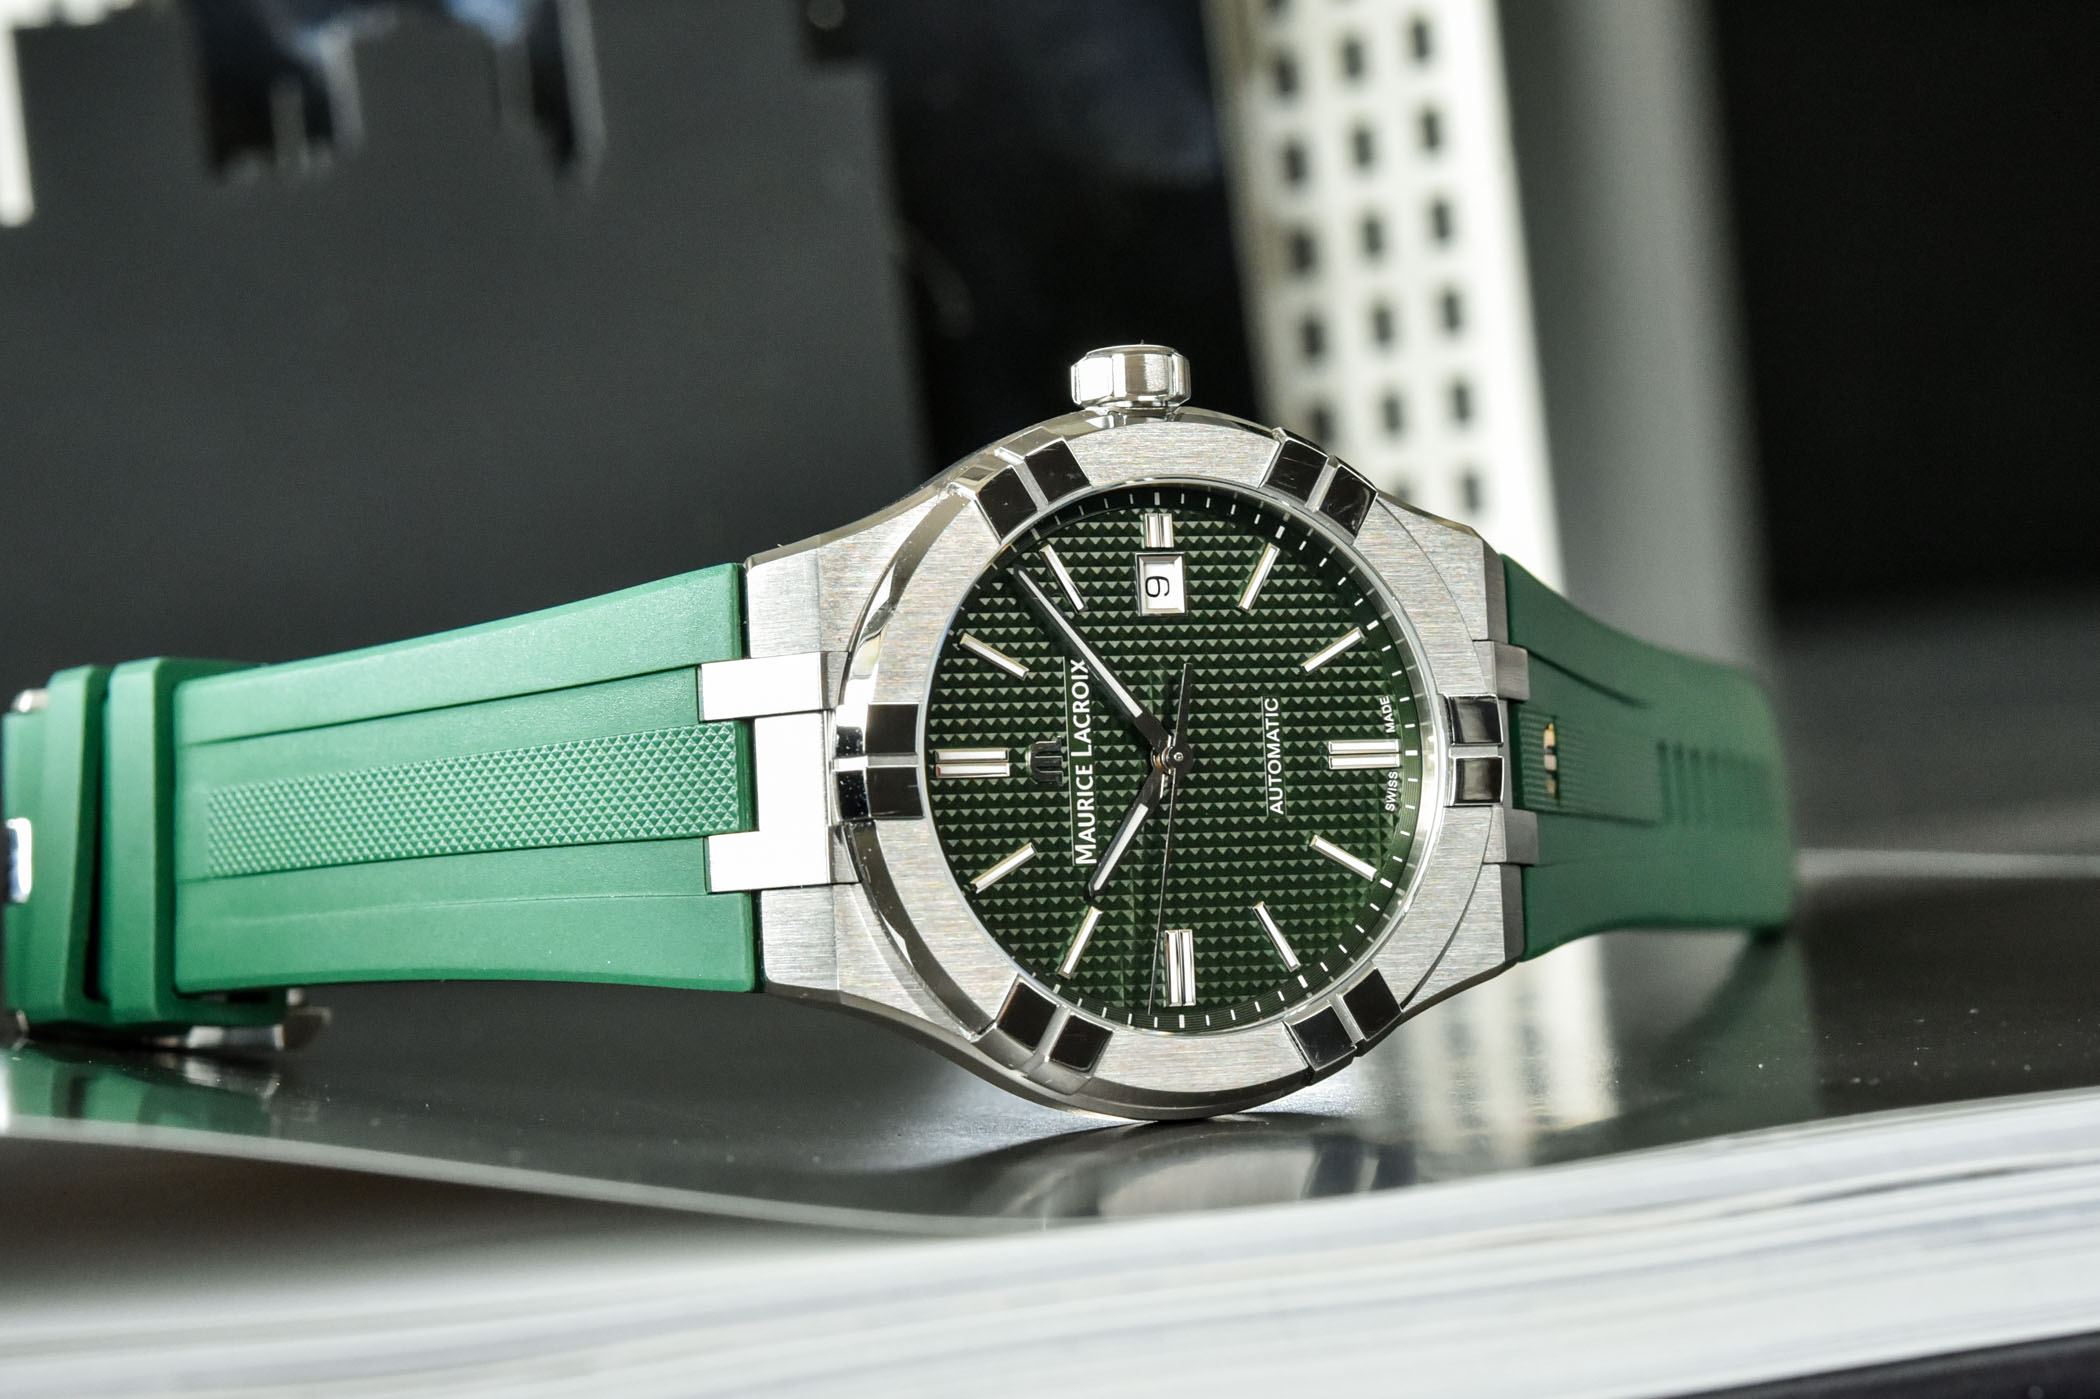 Maurice Lacroix Aikon Automatic 2021 Collection Rubber strap Green Dial